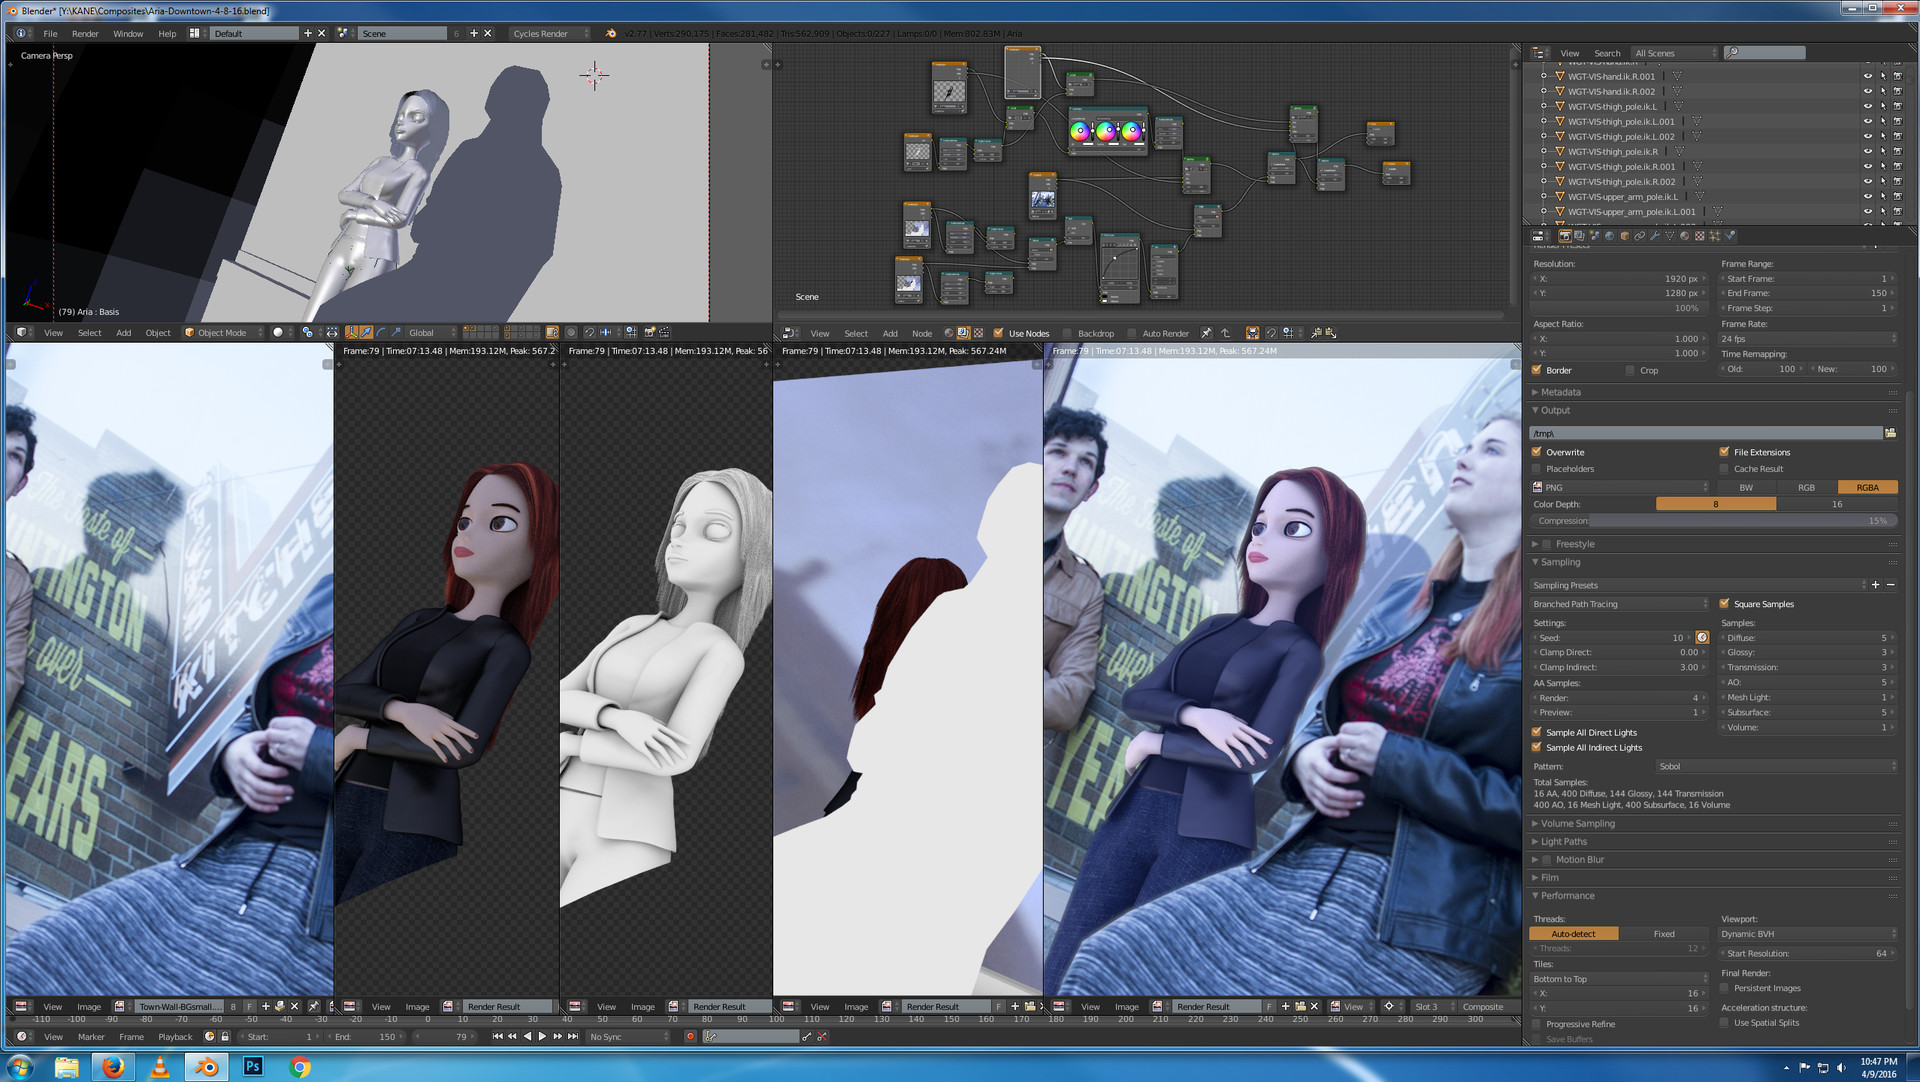 Compositing WIP screenshot.